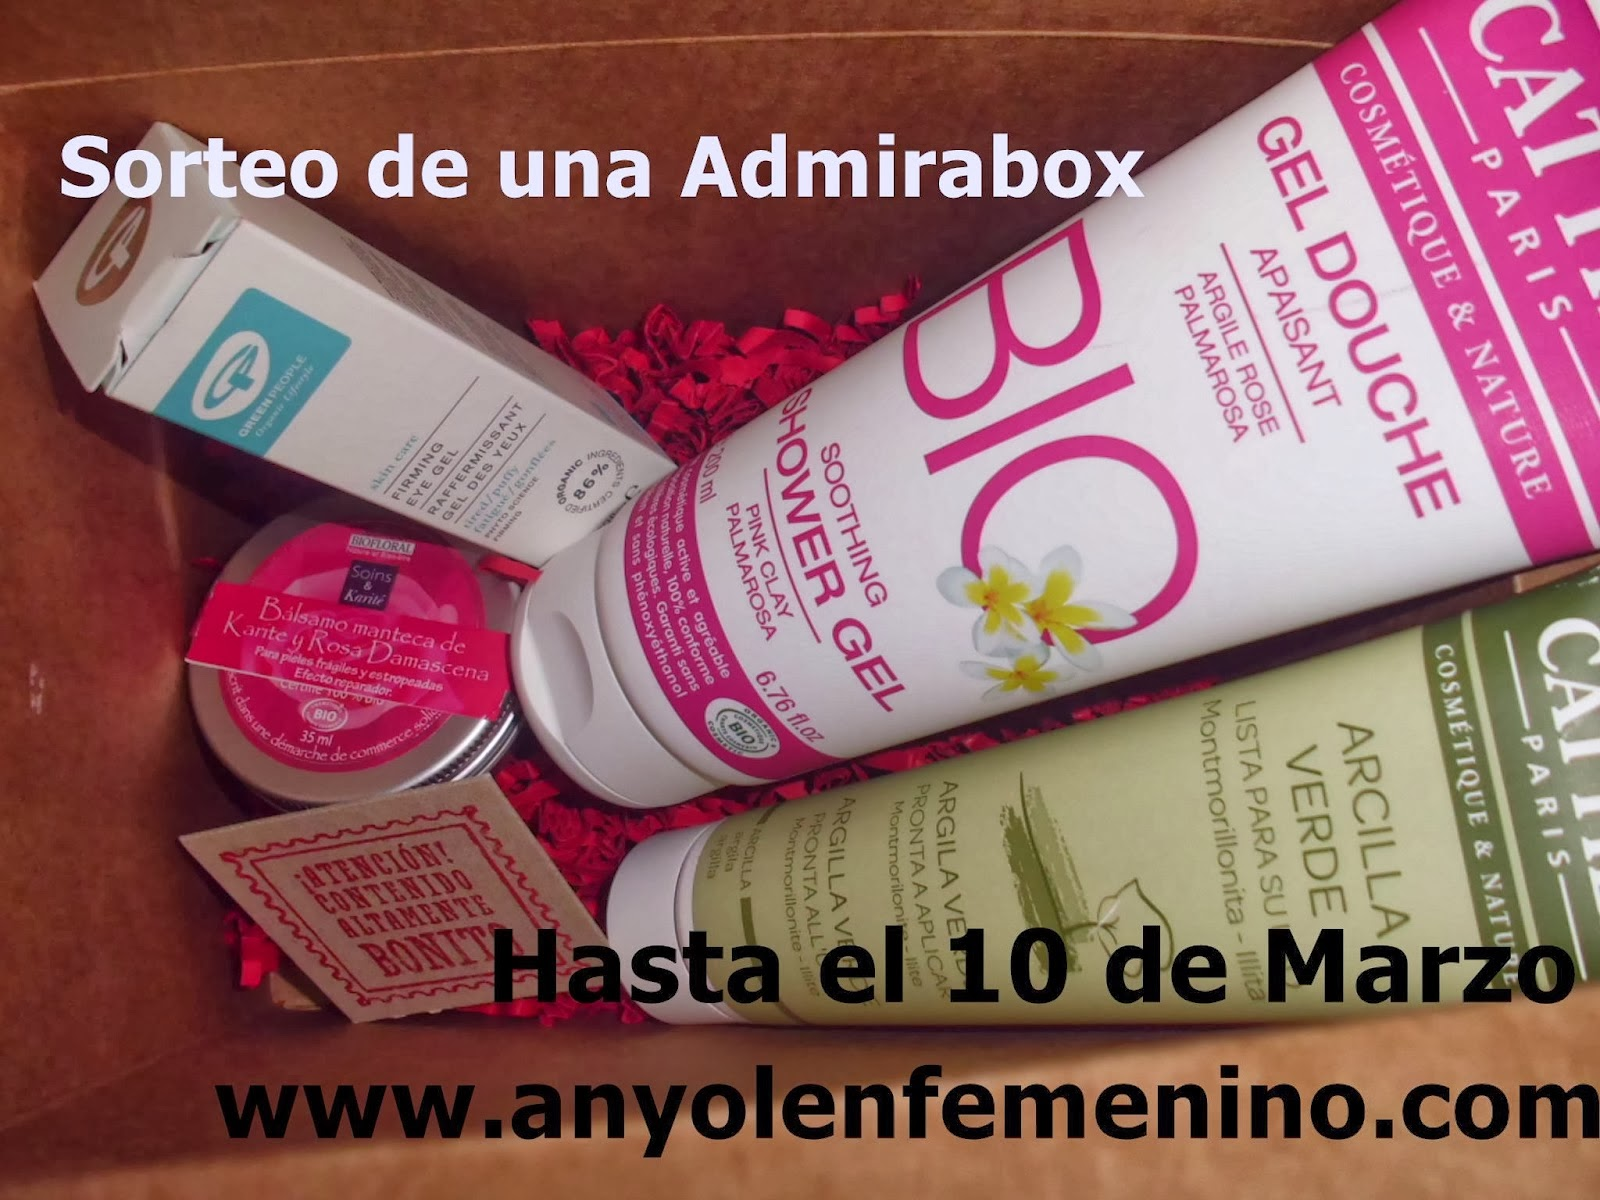 Sorteo admirabox